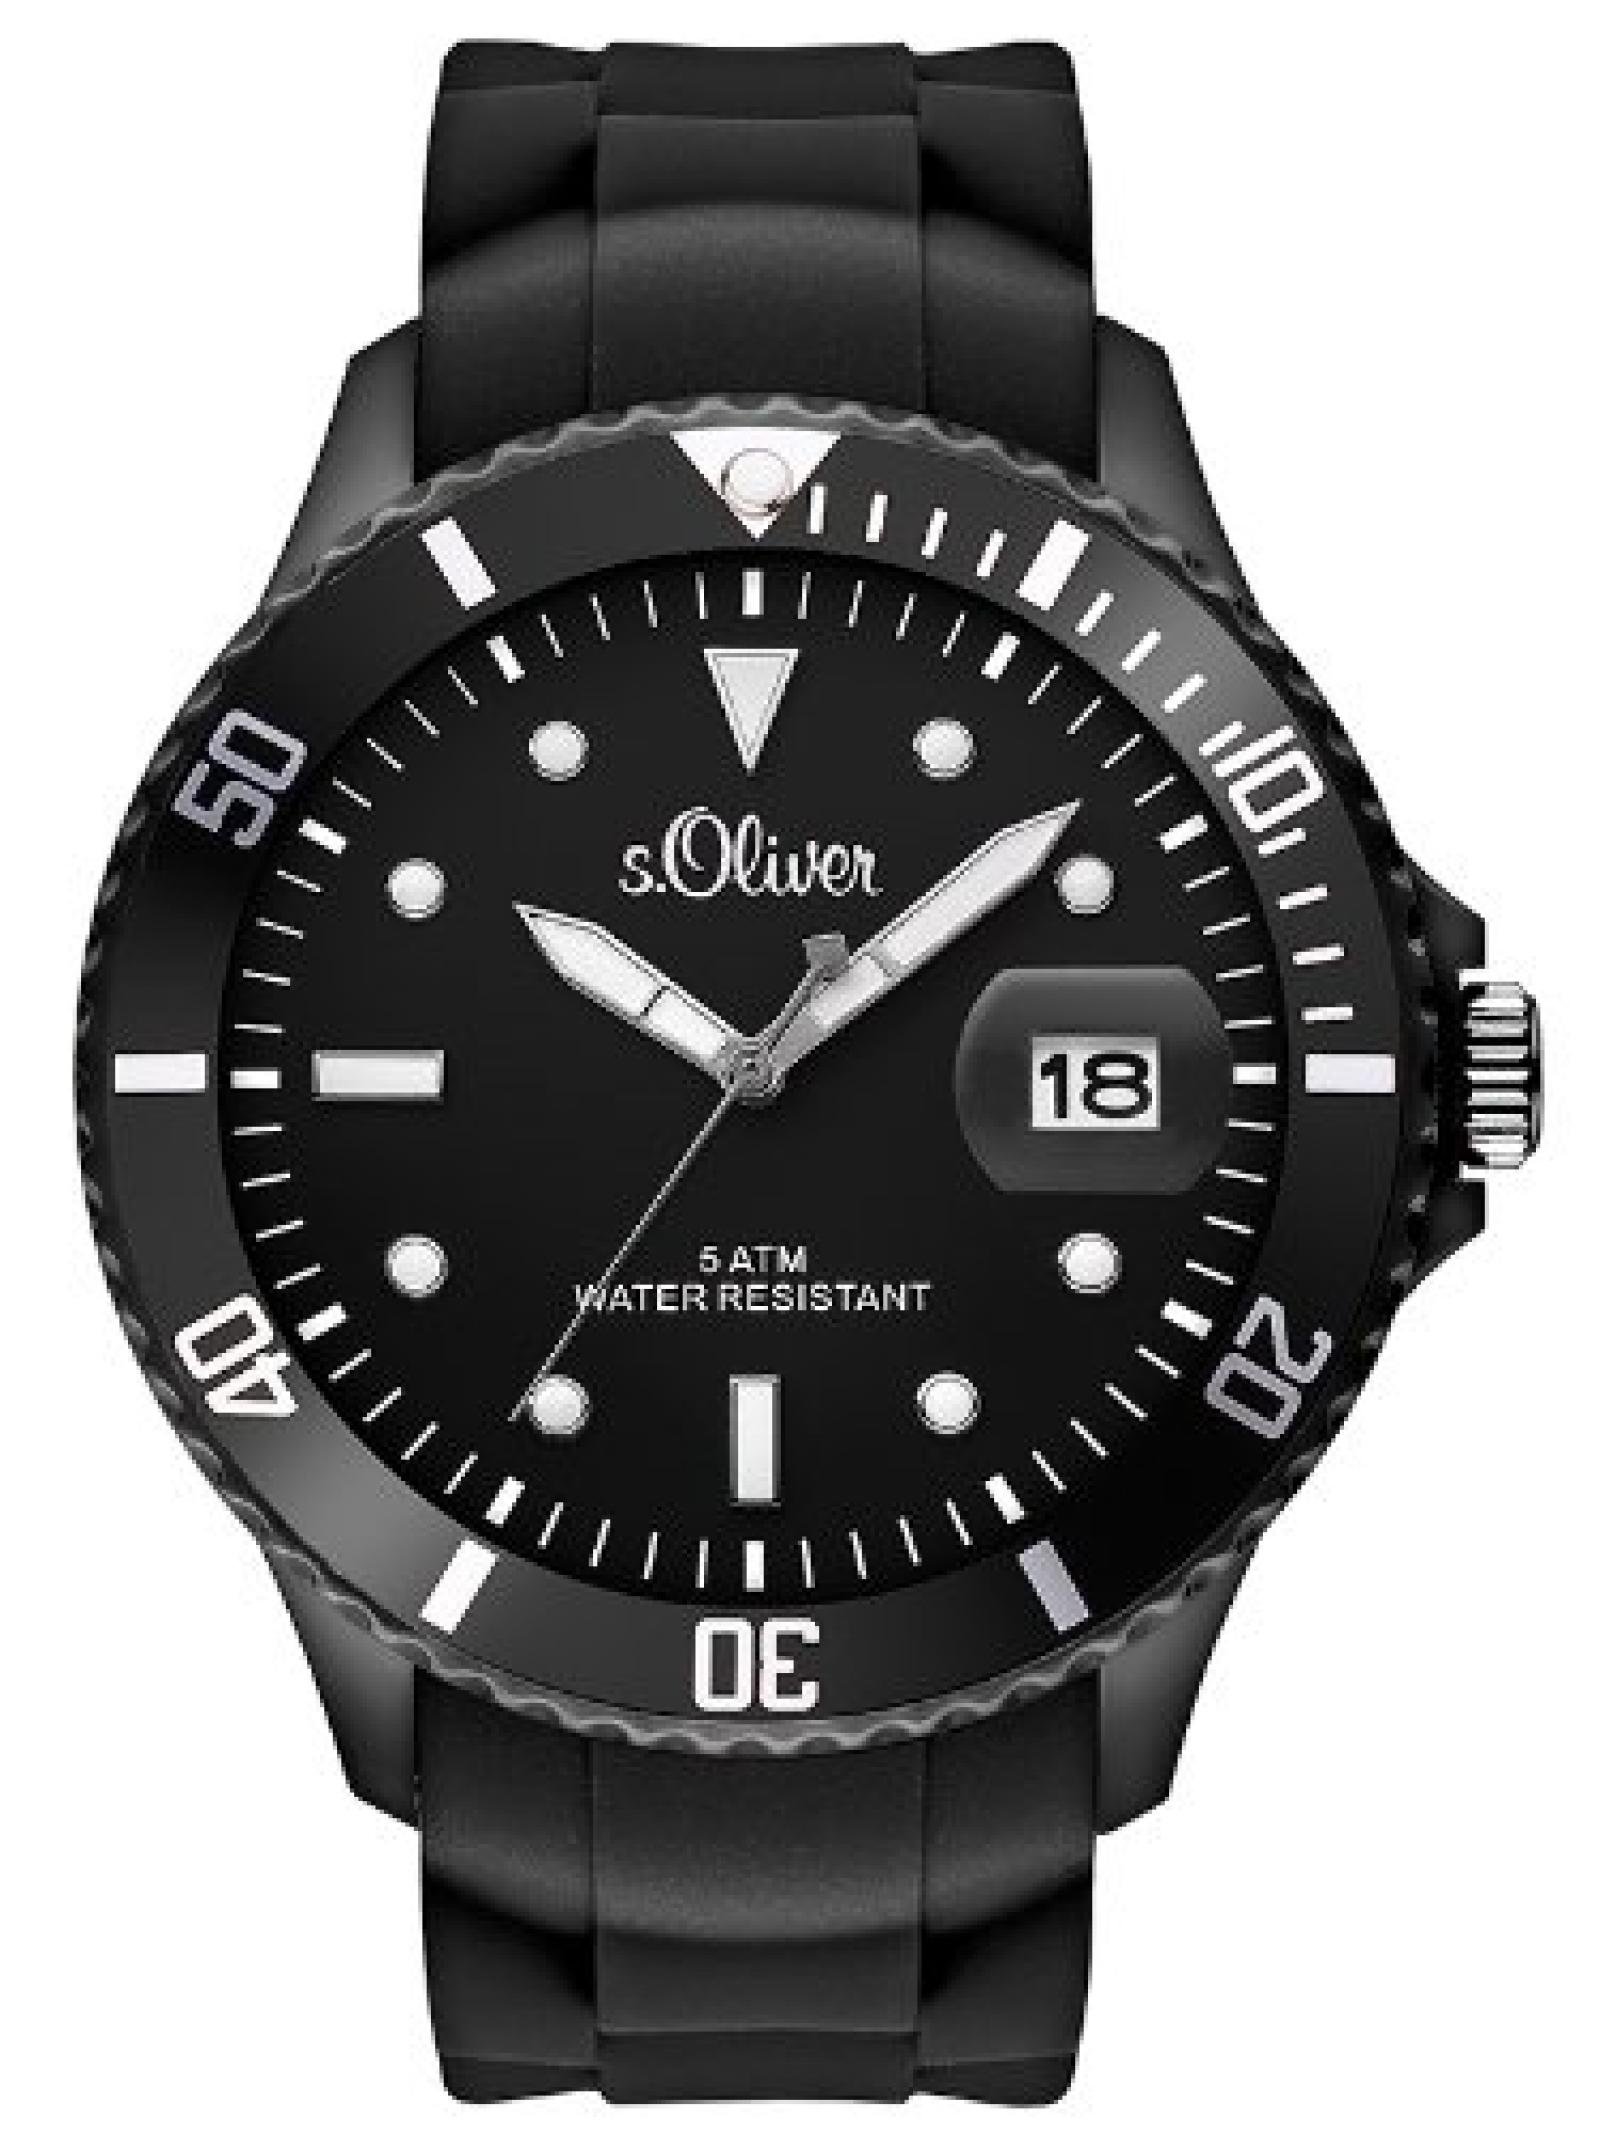 s.Oliver Herren-Armbanduhr XL Analog Quarz Silikon SO-2677-PQ